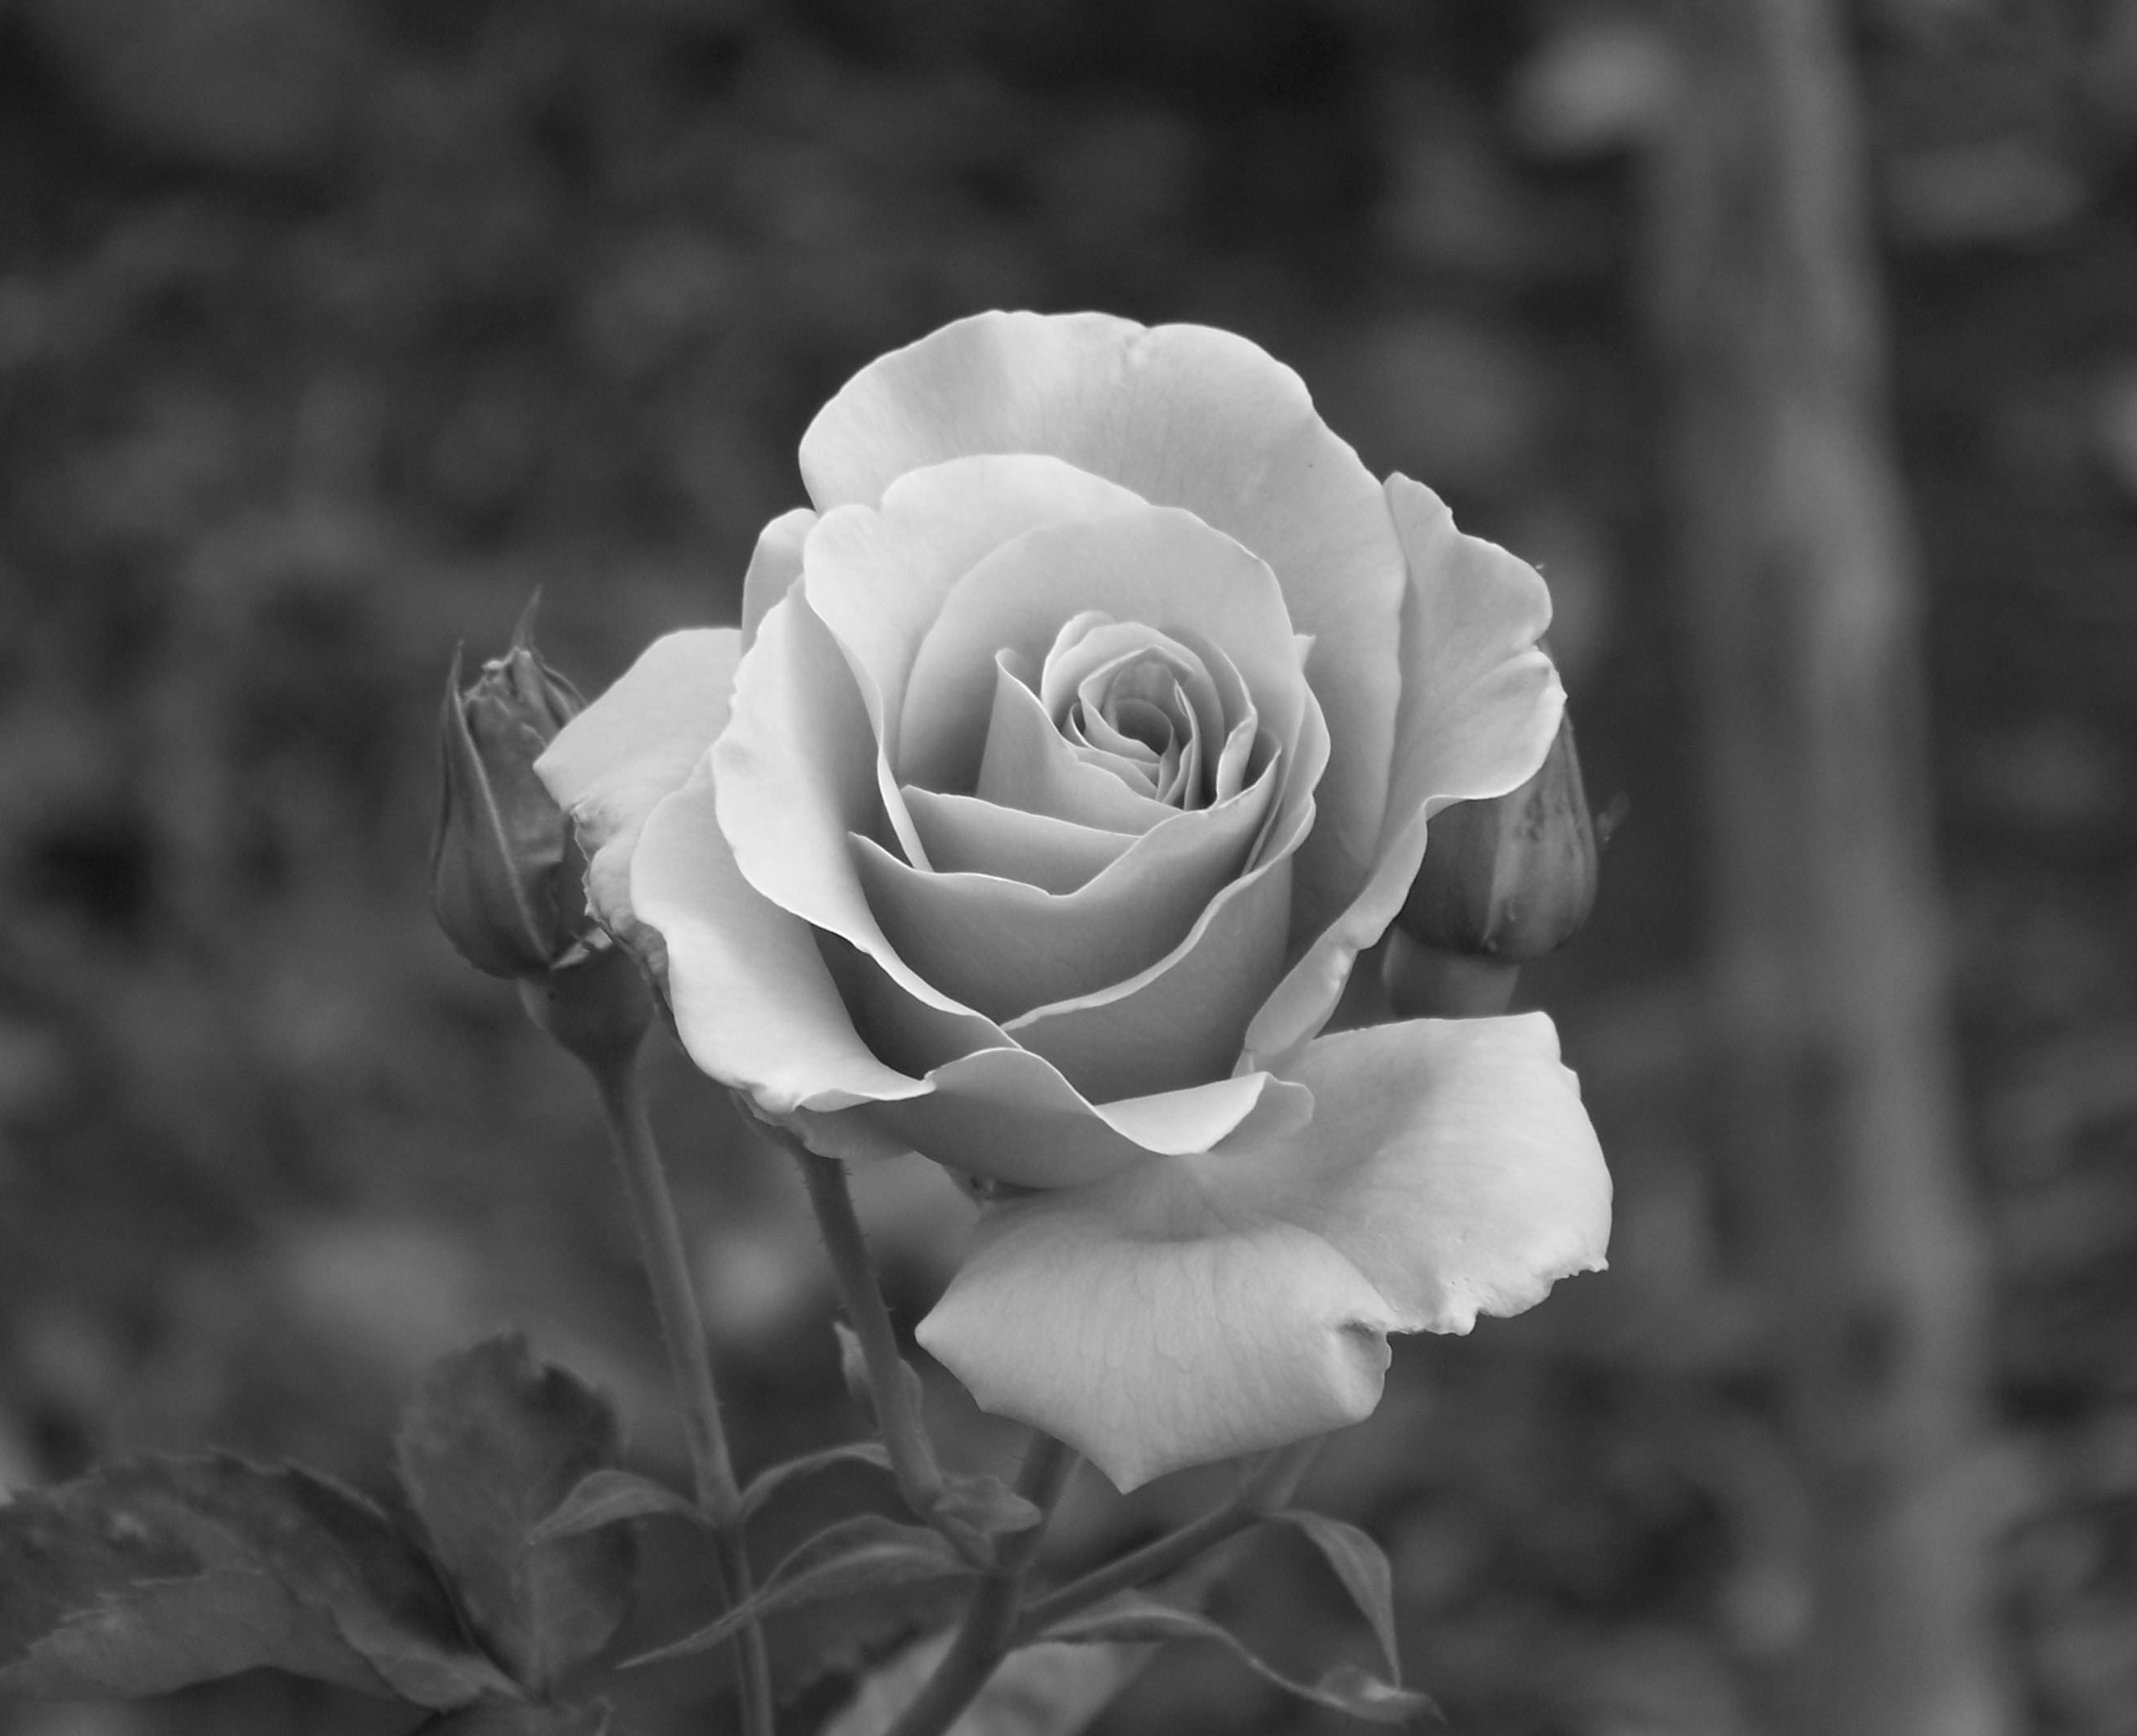 Pin By Lanny Markasky On Rose Pinterest Black And Grey Rose